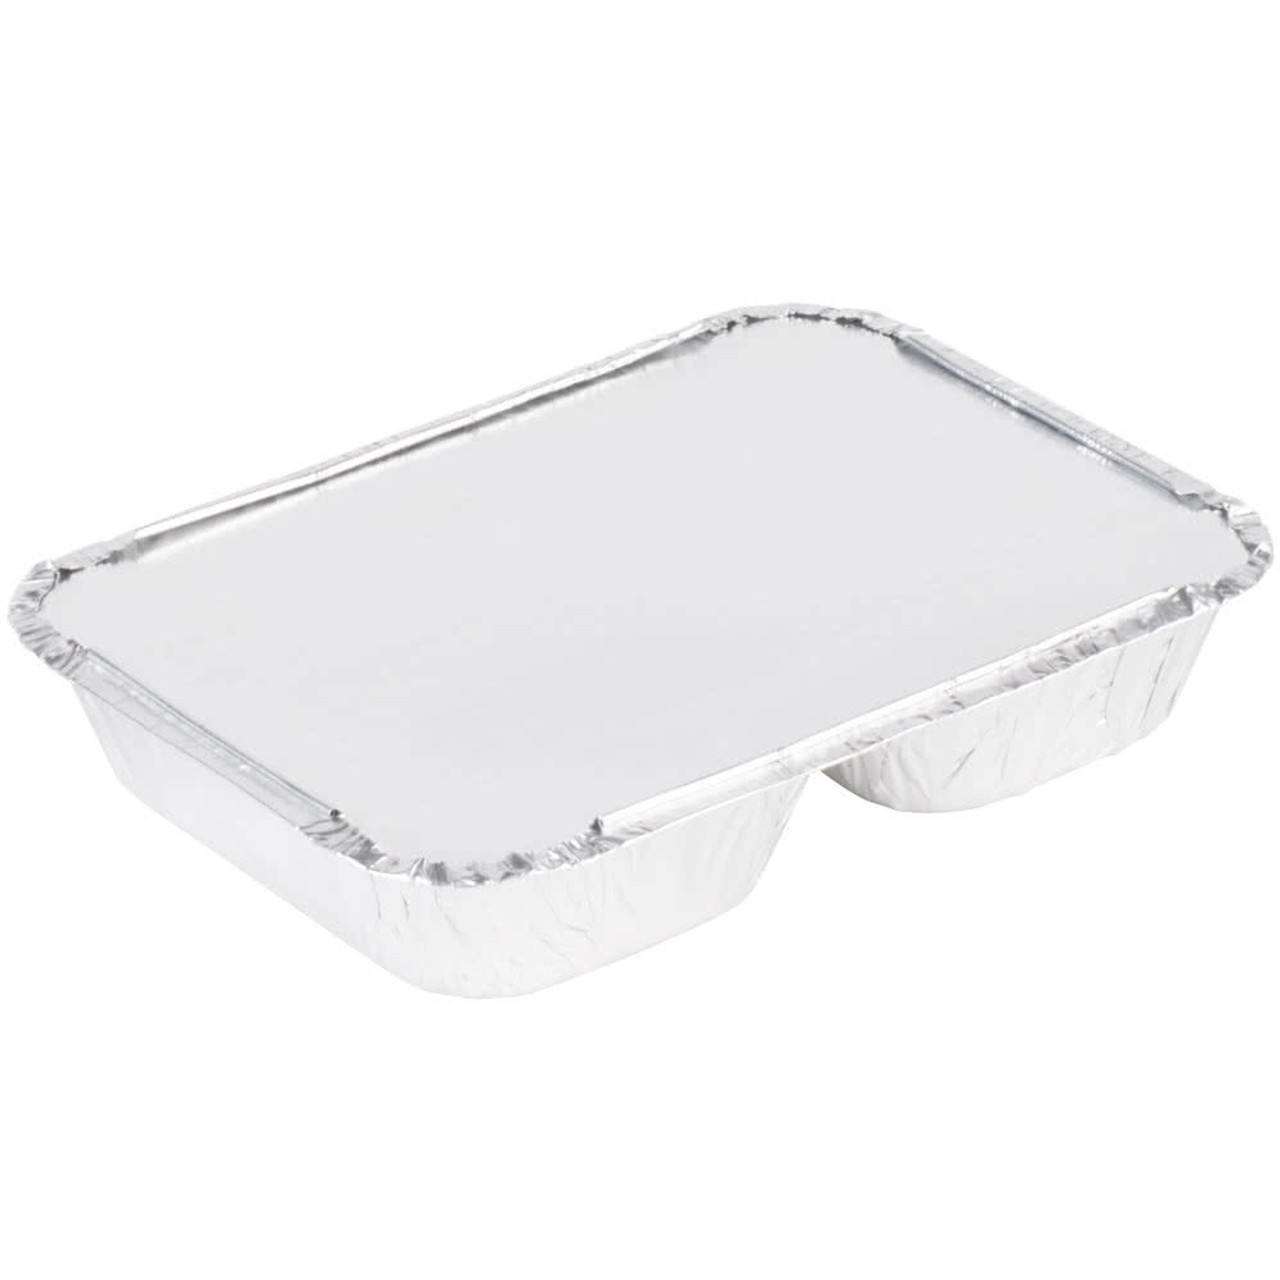 3 Compartment T.V Dinner Tray with Board Lid - Case of 250  #210L